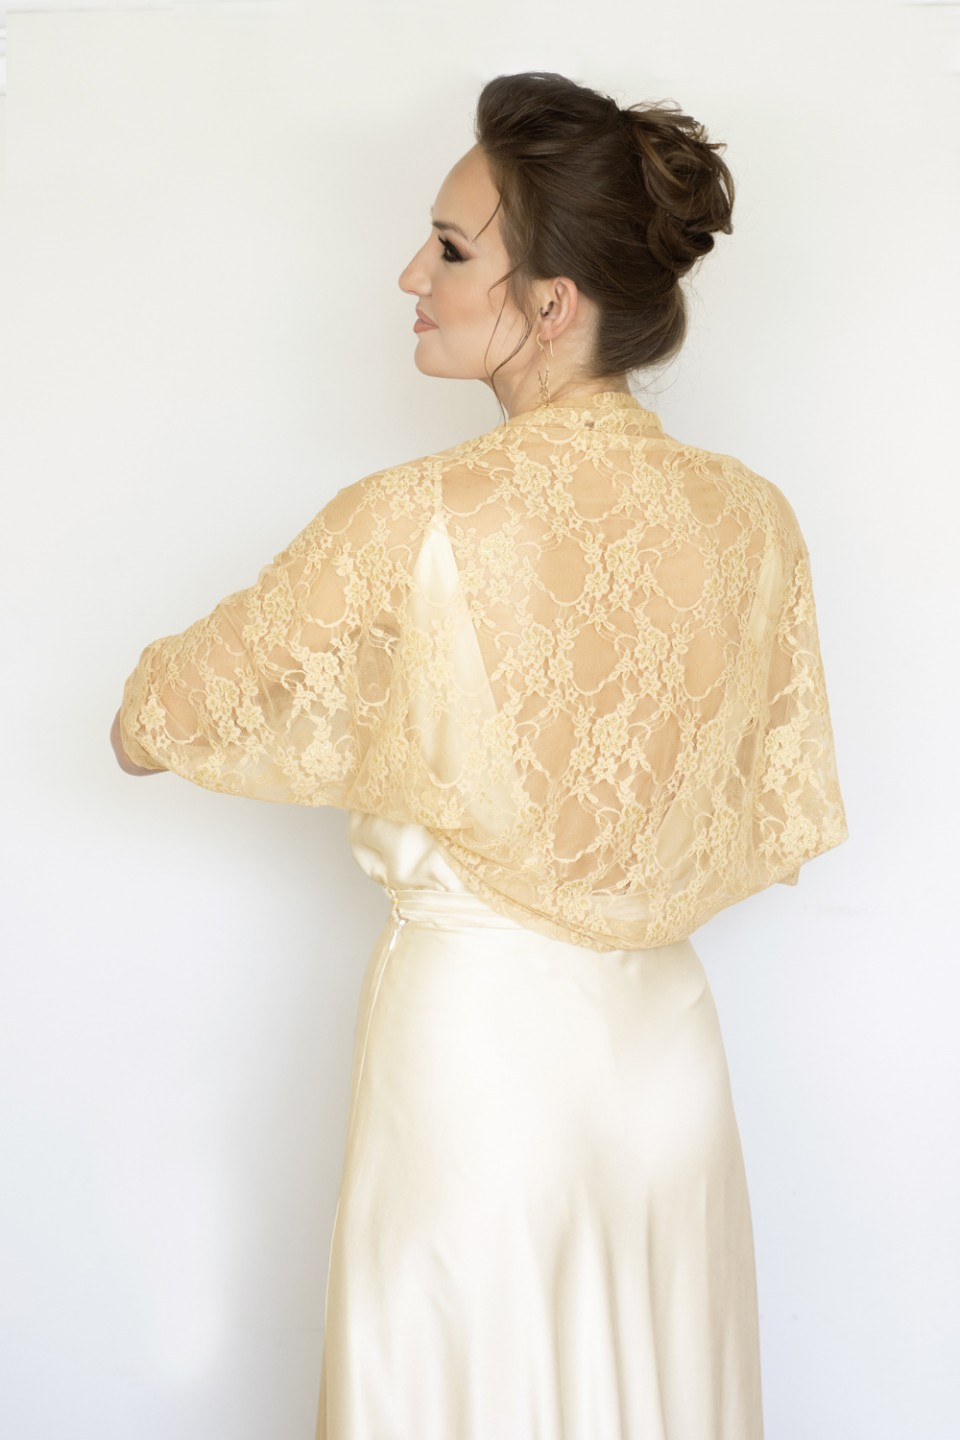 Gold lace shawl